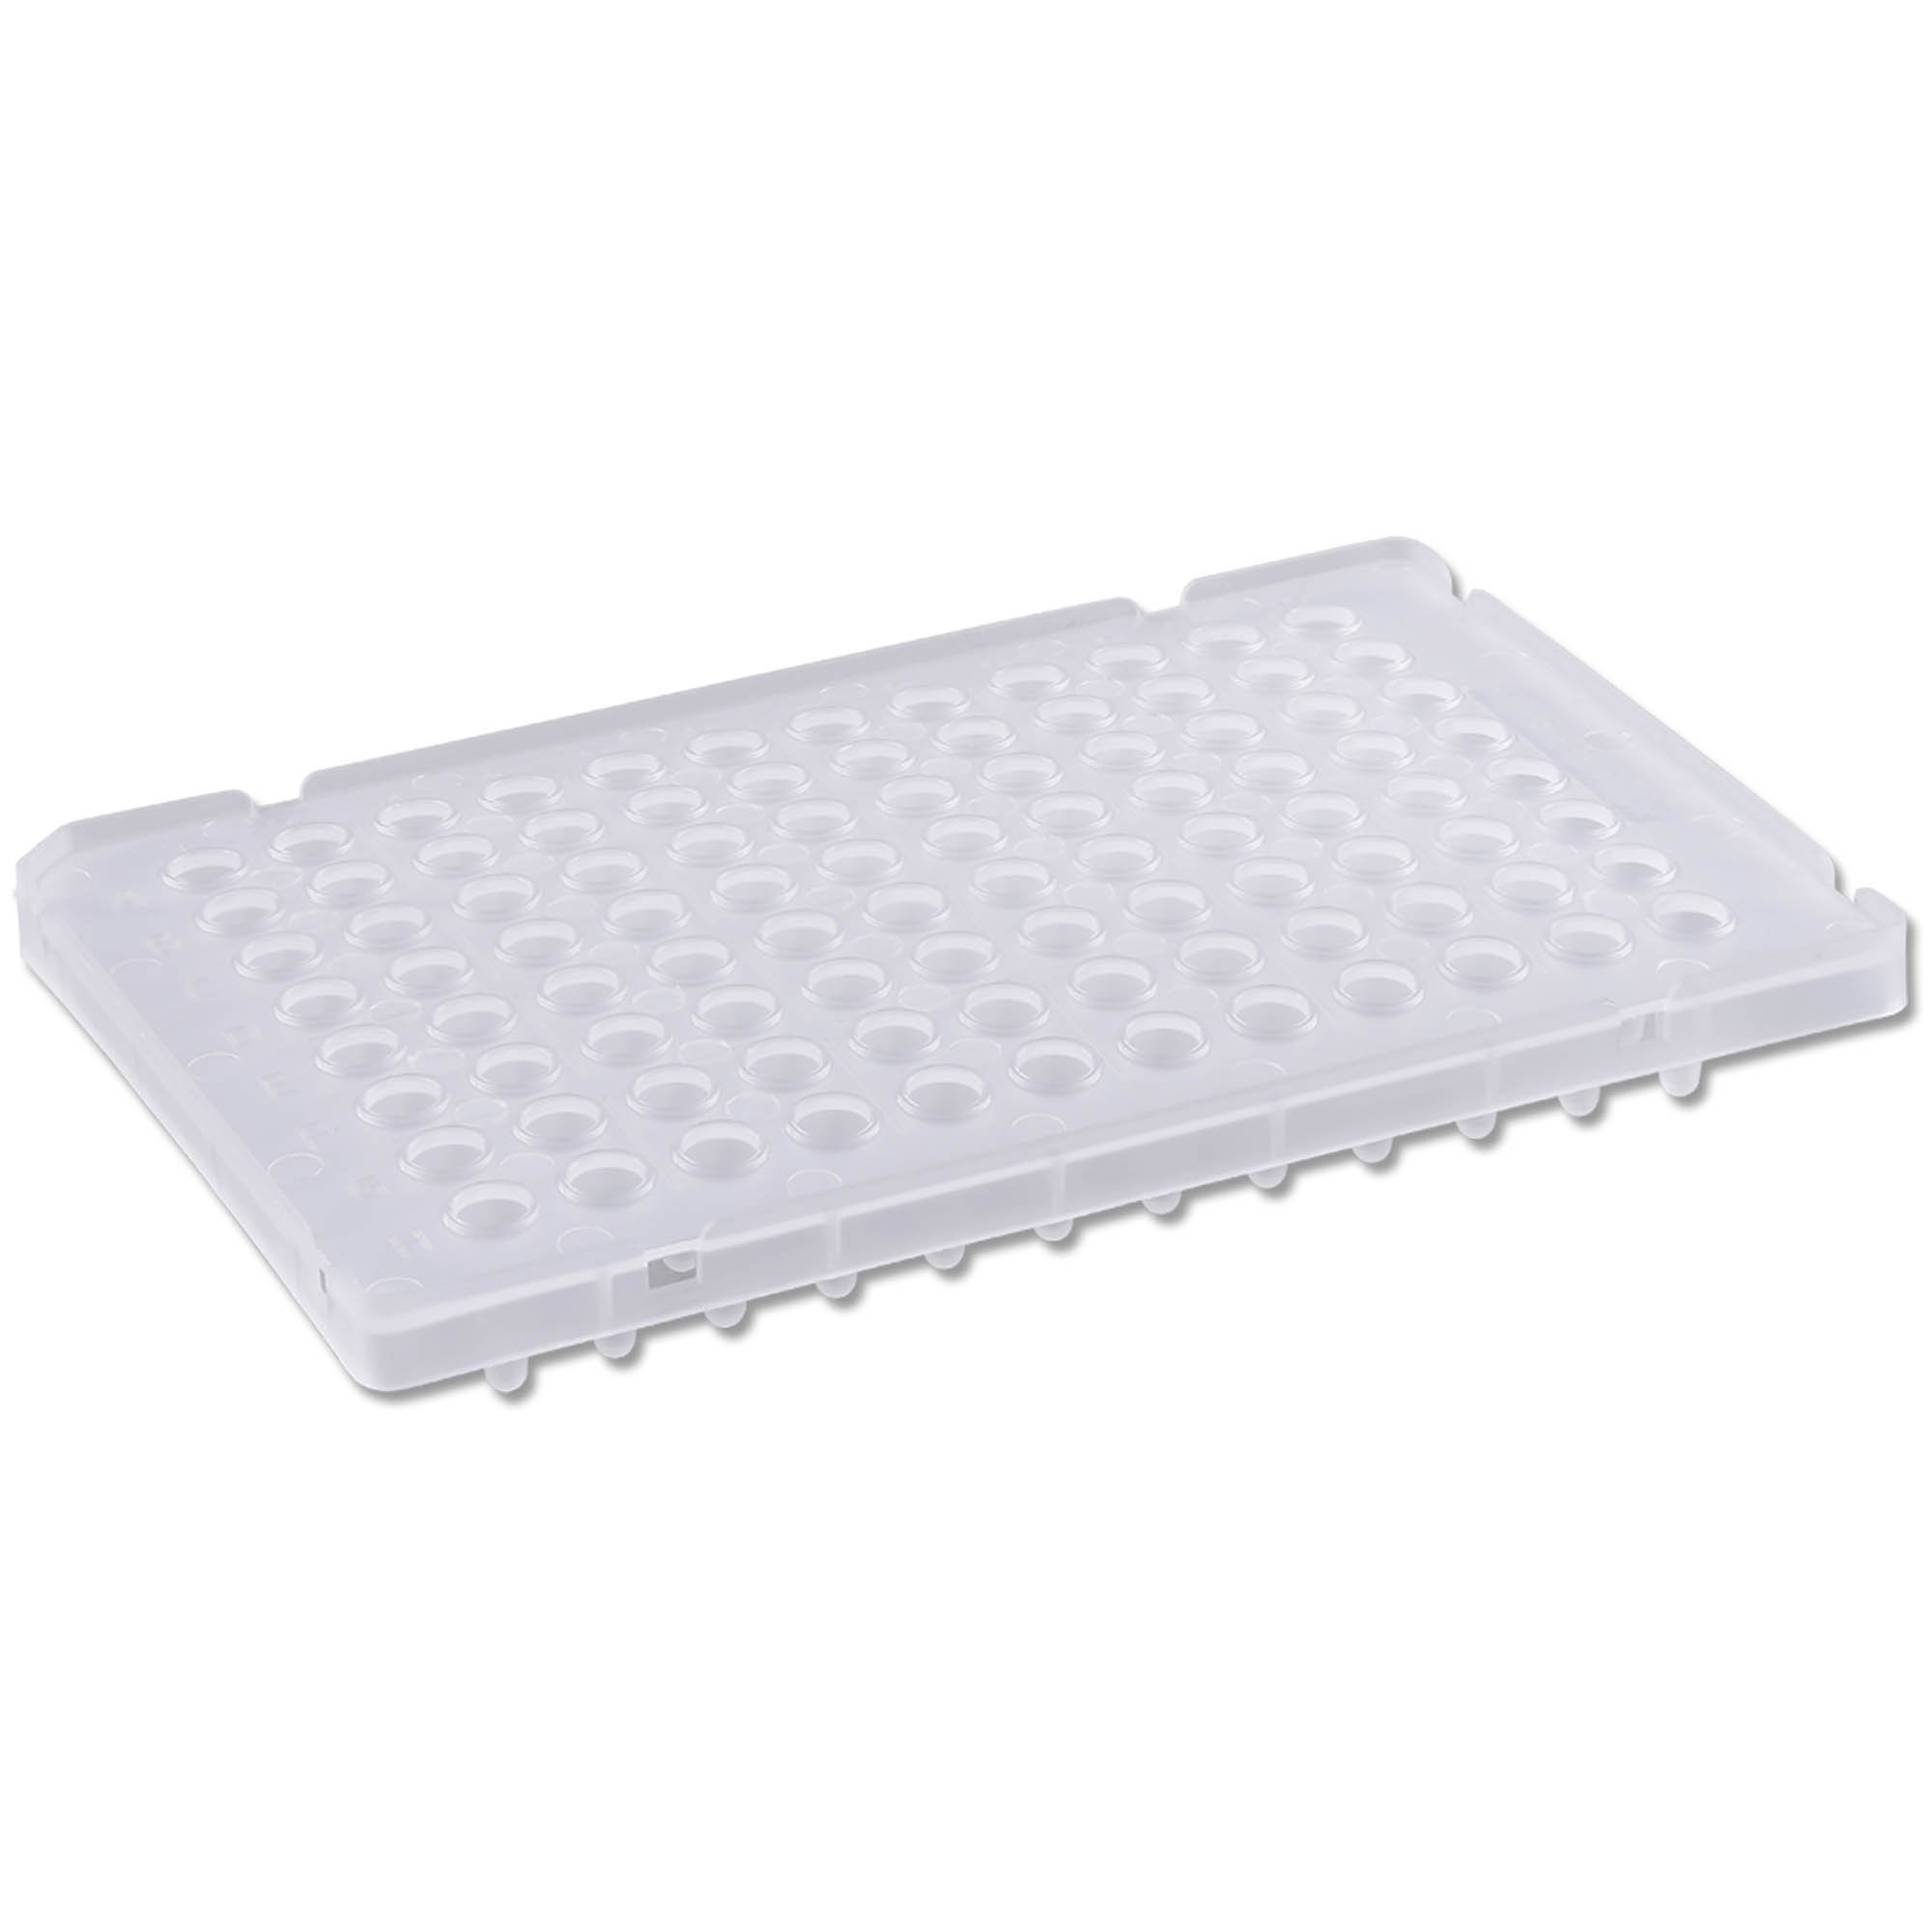 PureAmp Low Profile/Fast 96-Well x 0.1mL PCR Plates - Semi Skirted with Raised Rim, Natural (Pack of 50) - ON BACKORDER UNTIL 6/30/2021